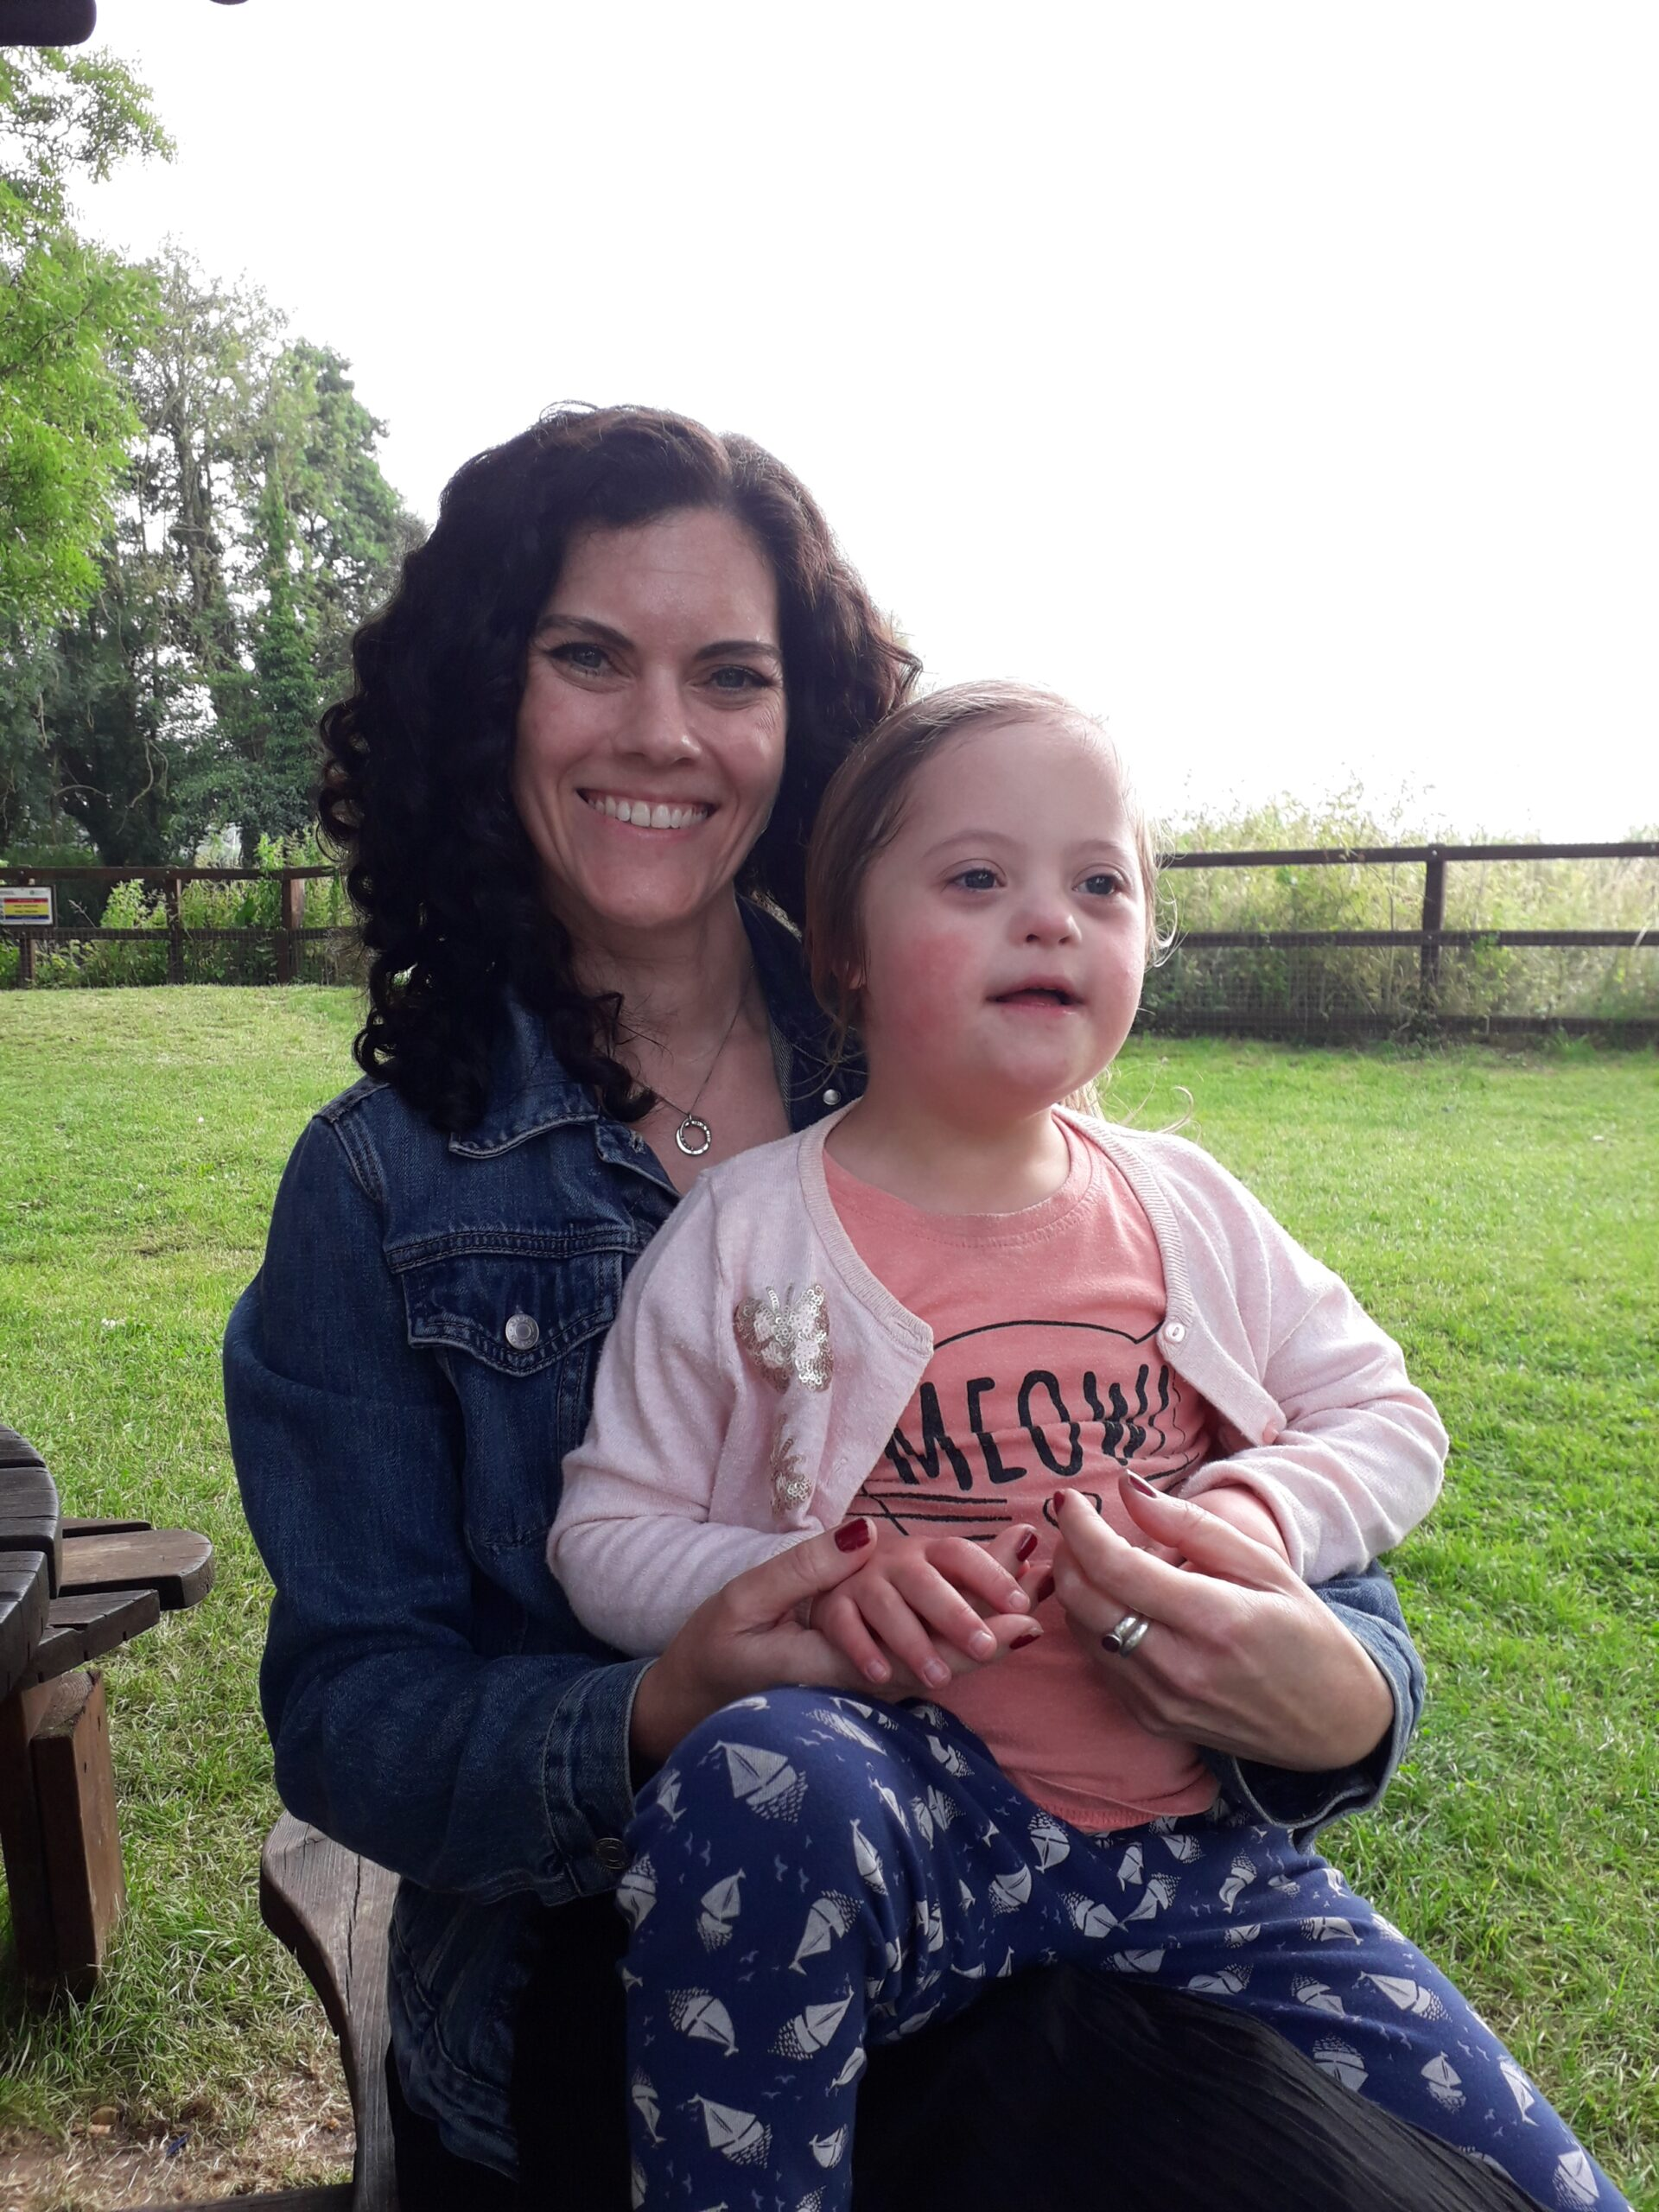 A mum with her daughter sat on her lap outside, both smiling.